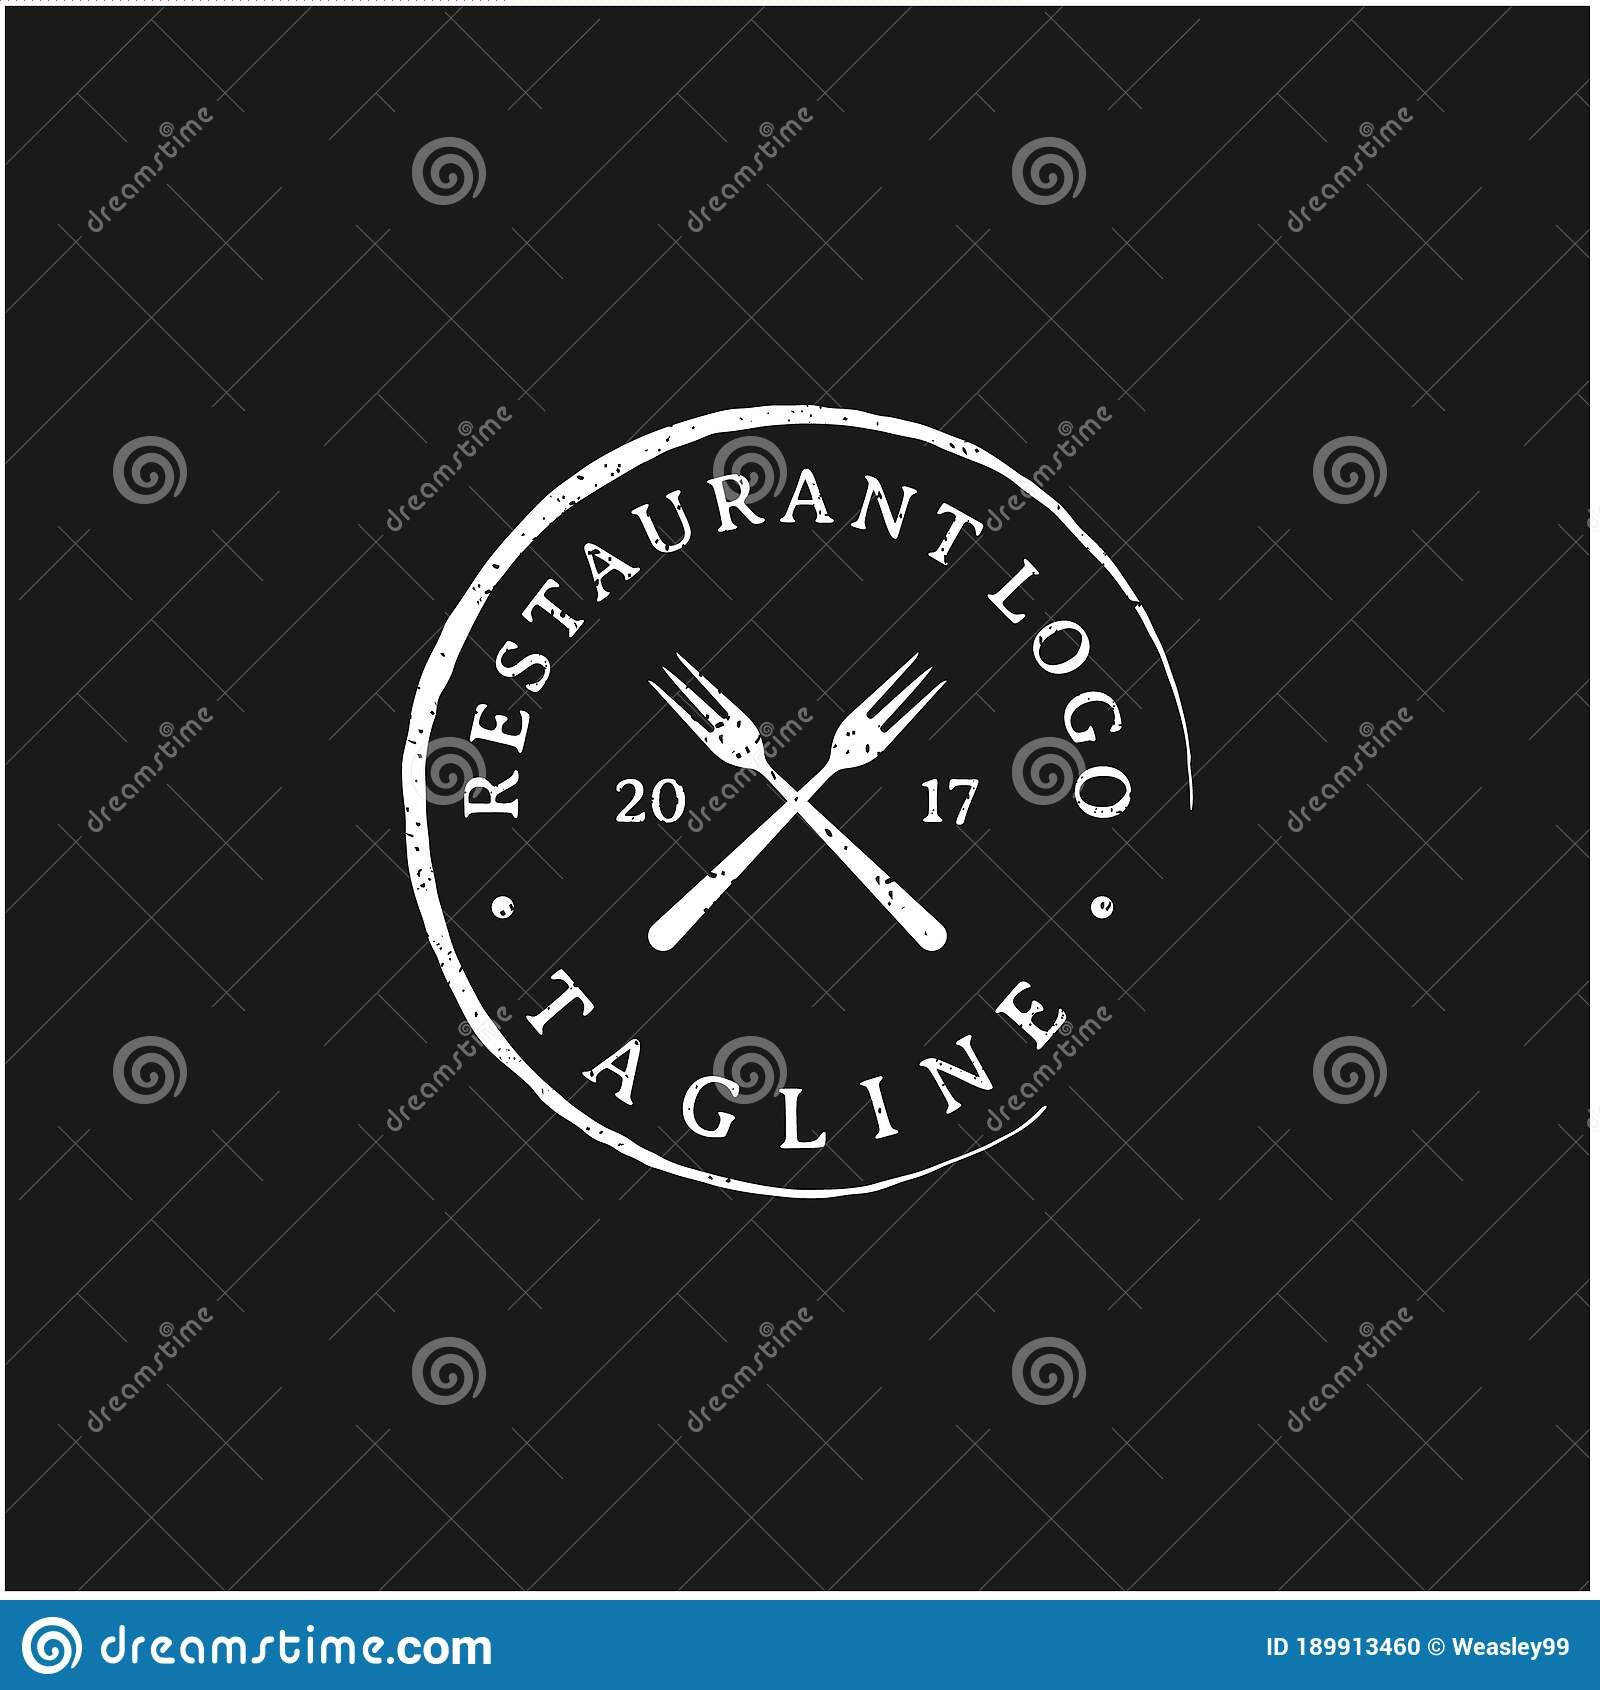 Vintage Rustic Stamp For Restaurant Logo Design Stock Vector Illustration Of Beef Ribs 189913460